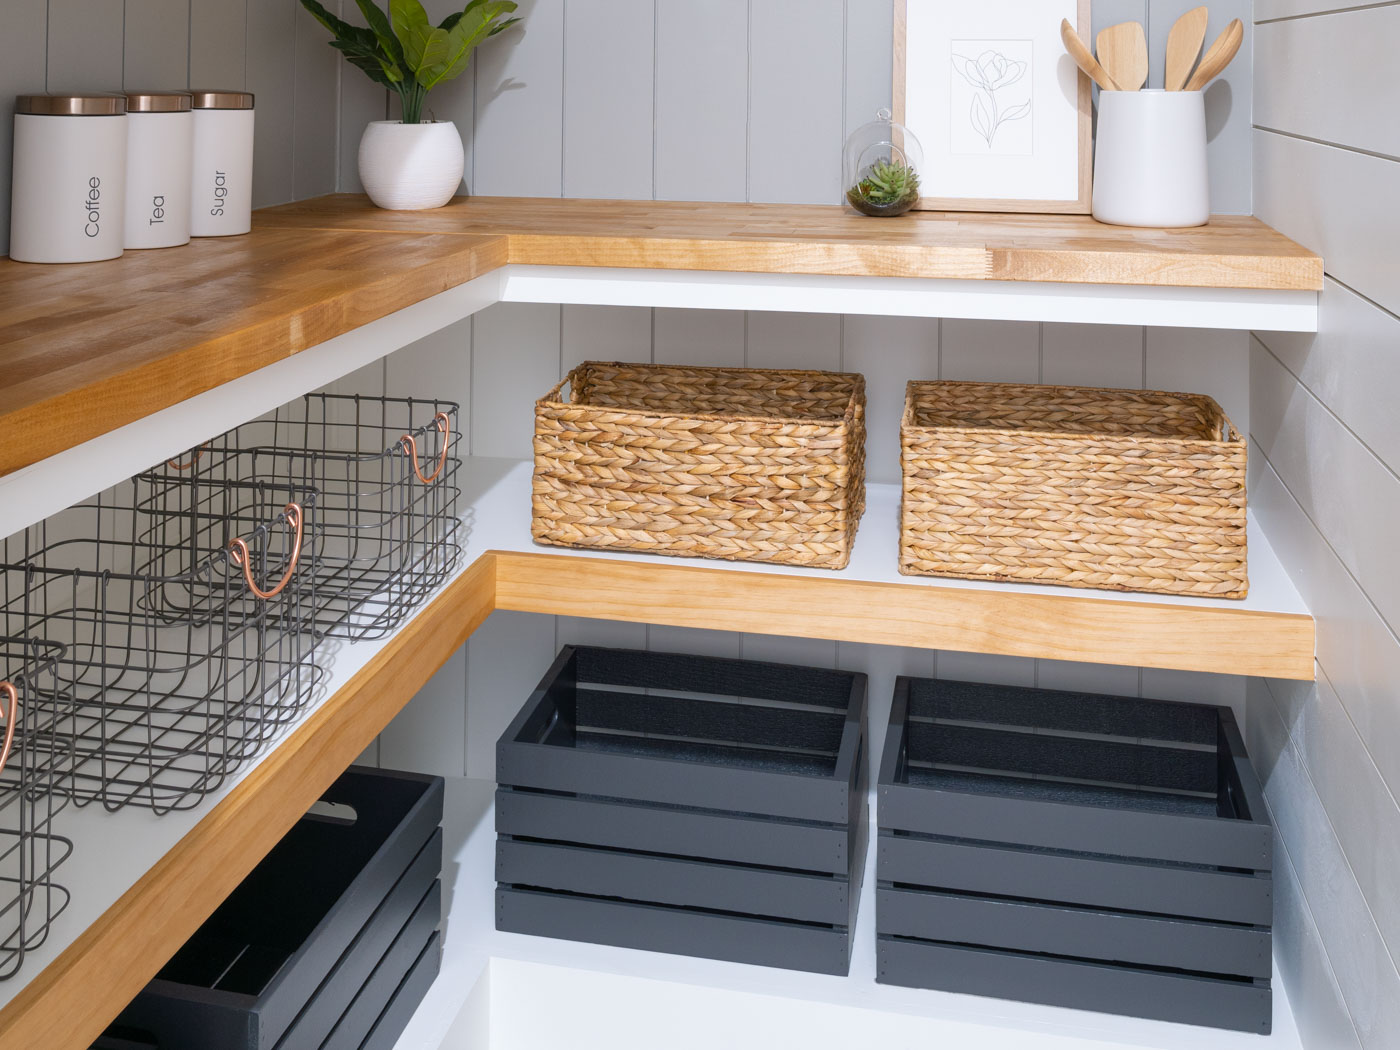 woven baskets, wire metal baskets and black wooden crates on white and brown shelves